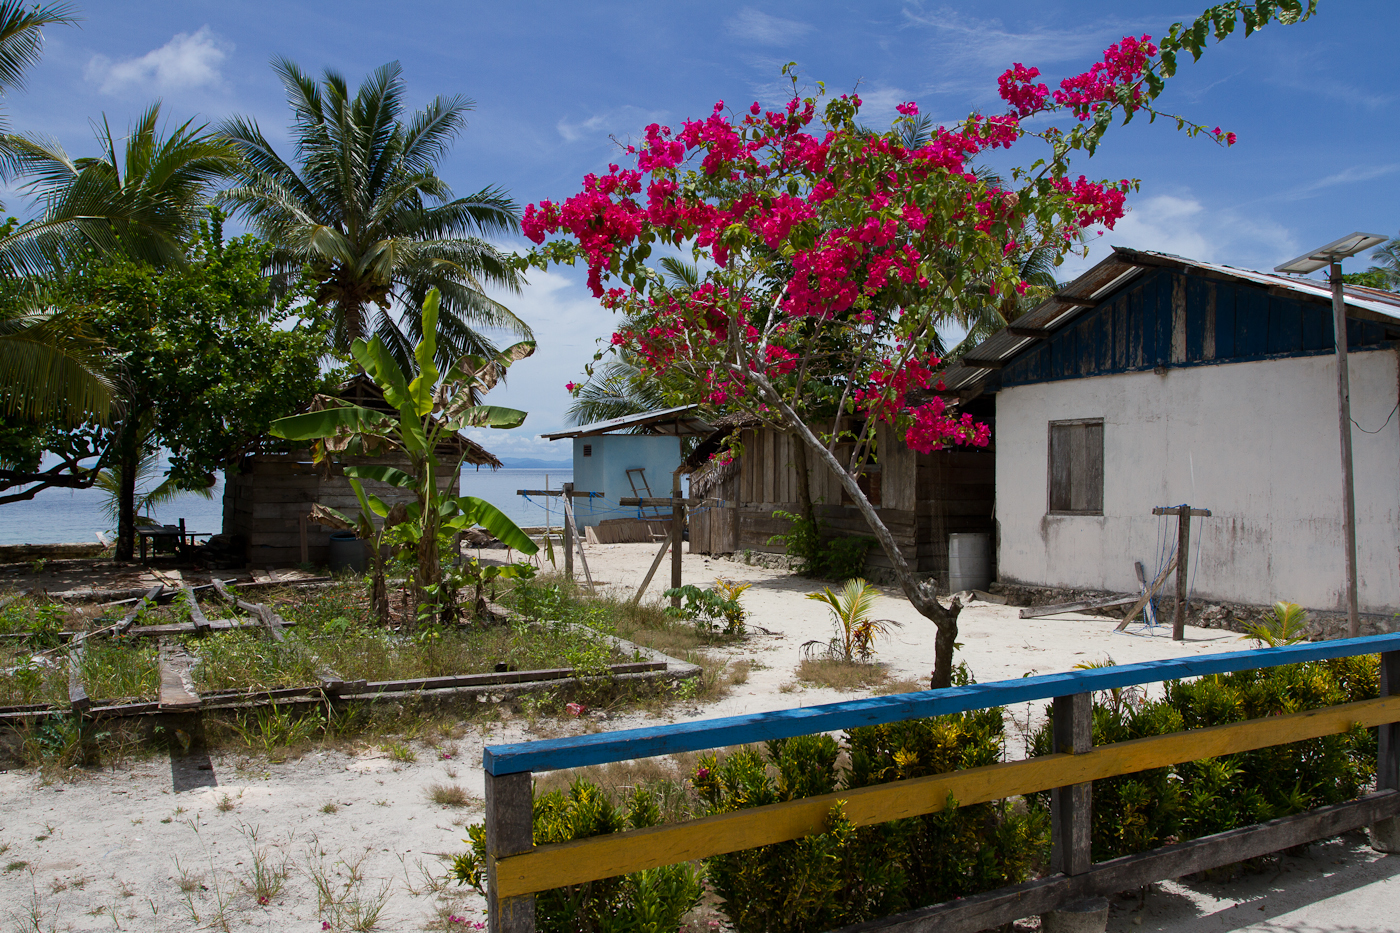 Houses in Sapokren village on the 'main island' of Waigeo.